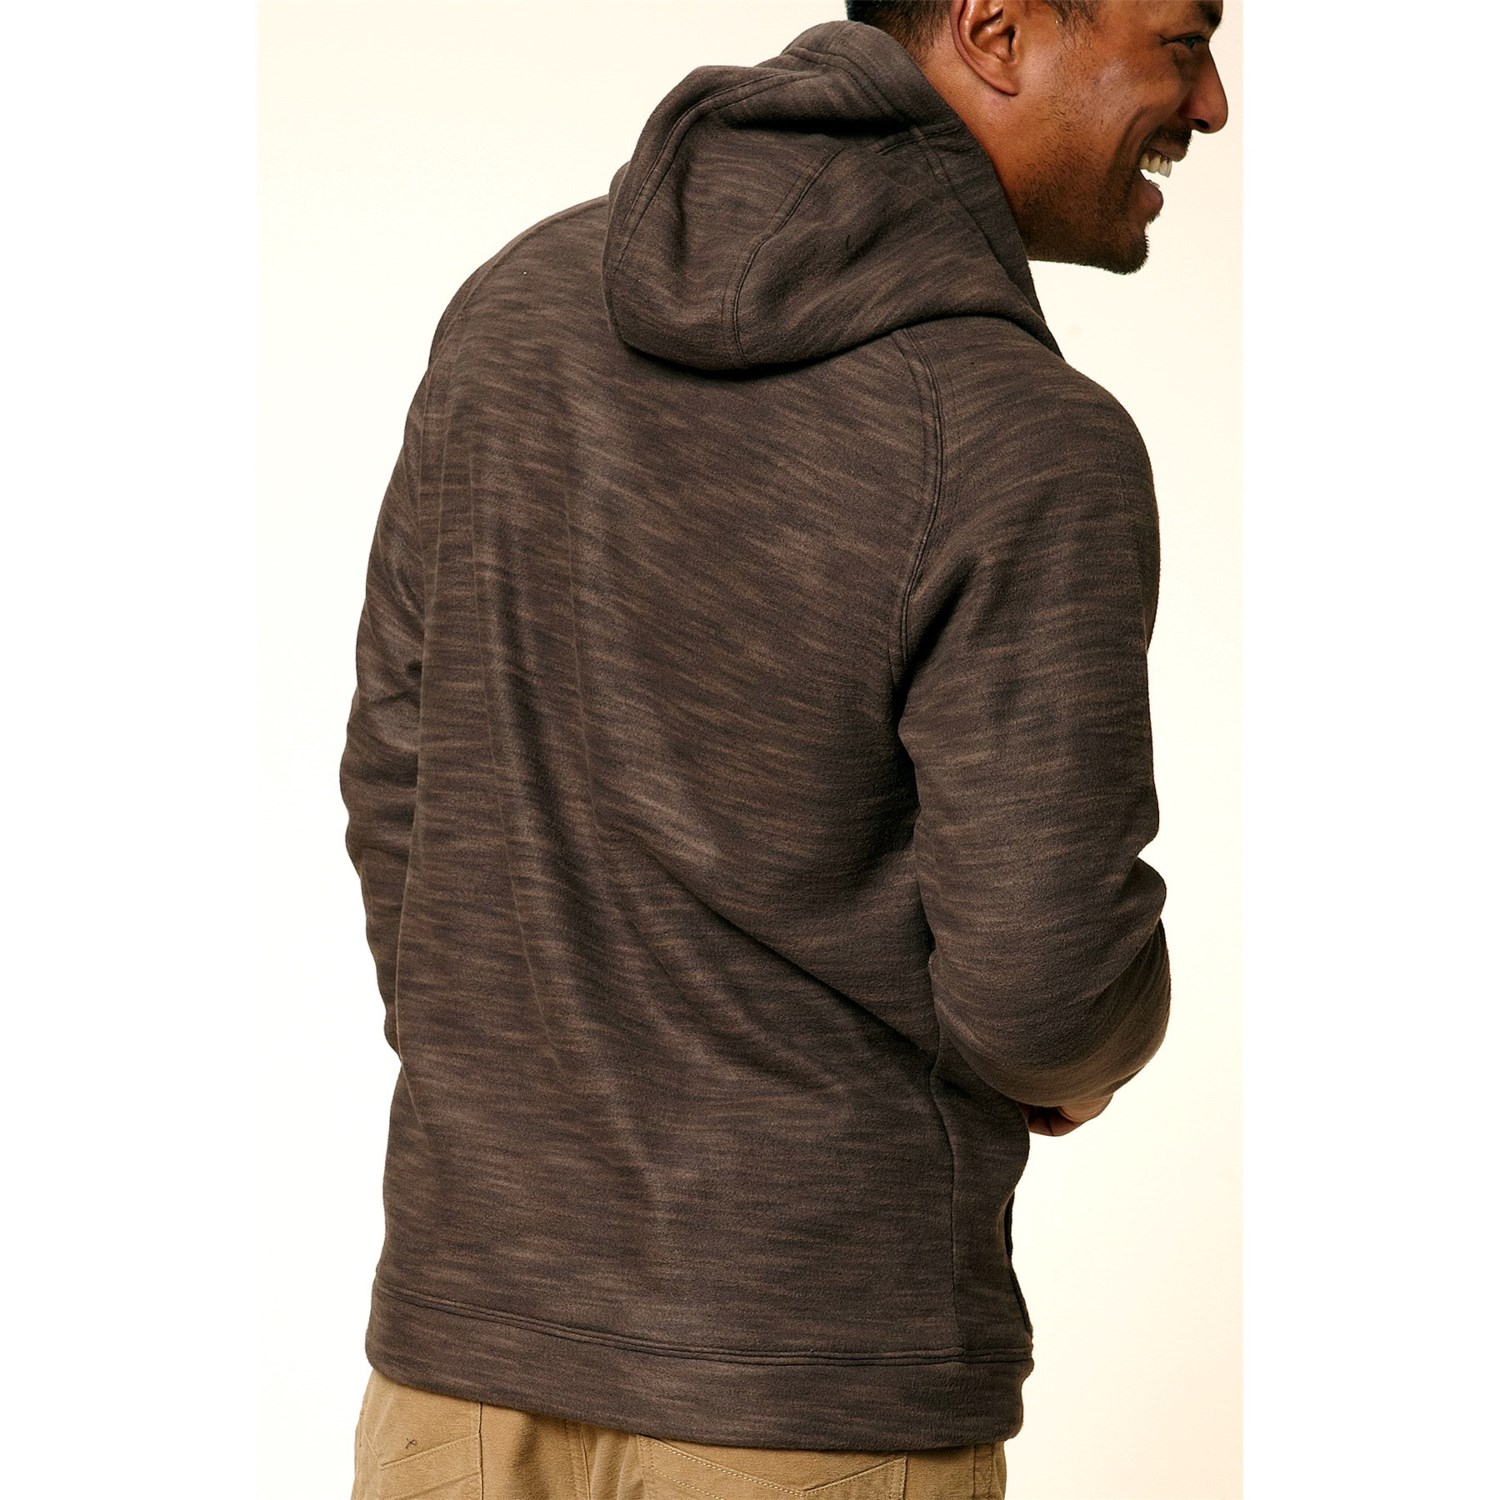 Royal robbins space dyed fleece hoodie for men 8363y for Space fleece fabric